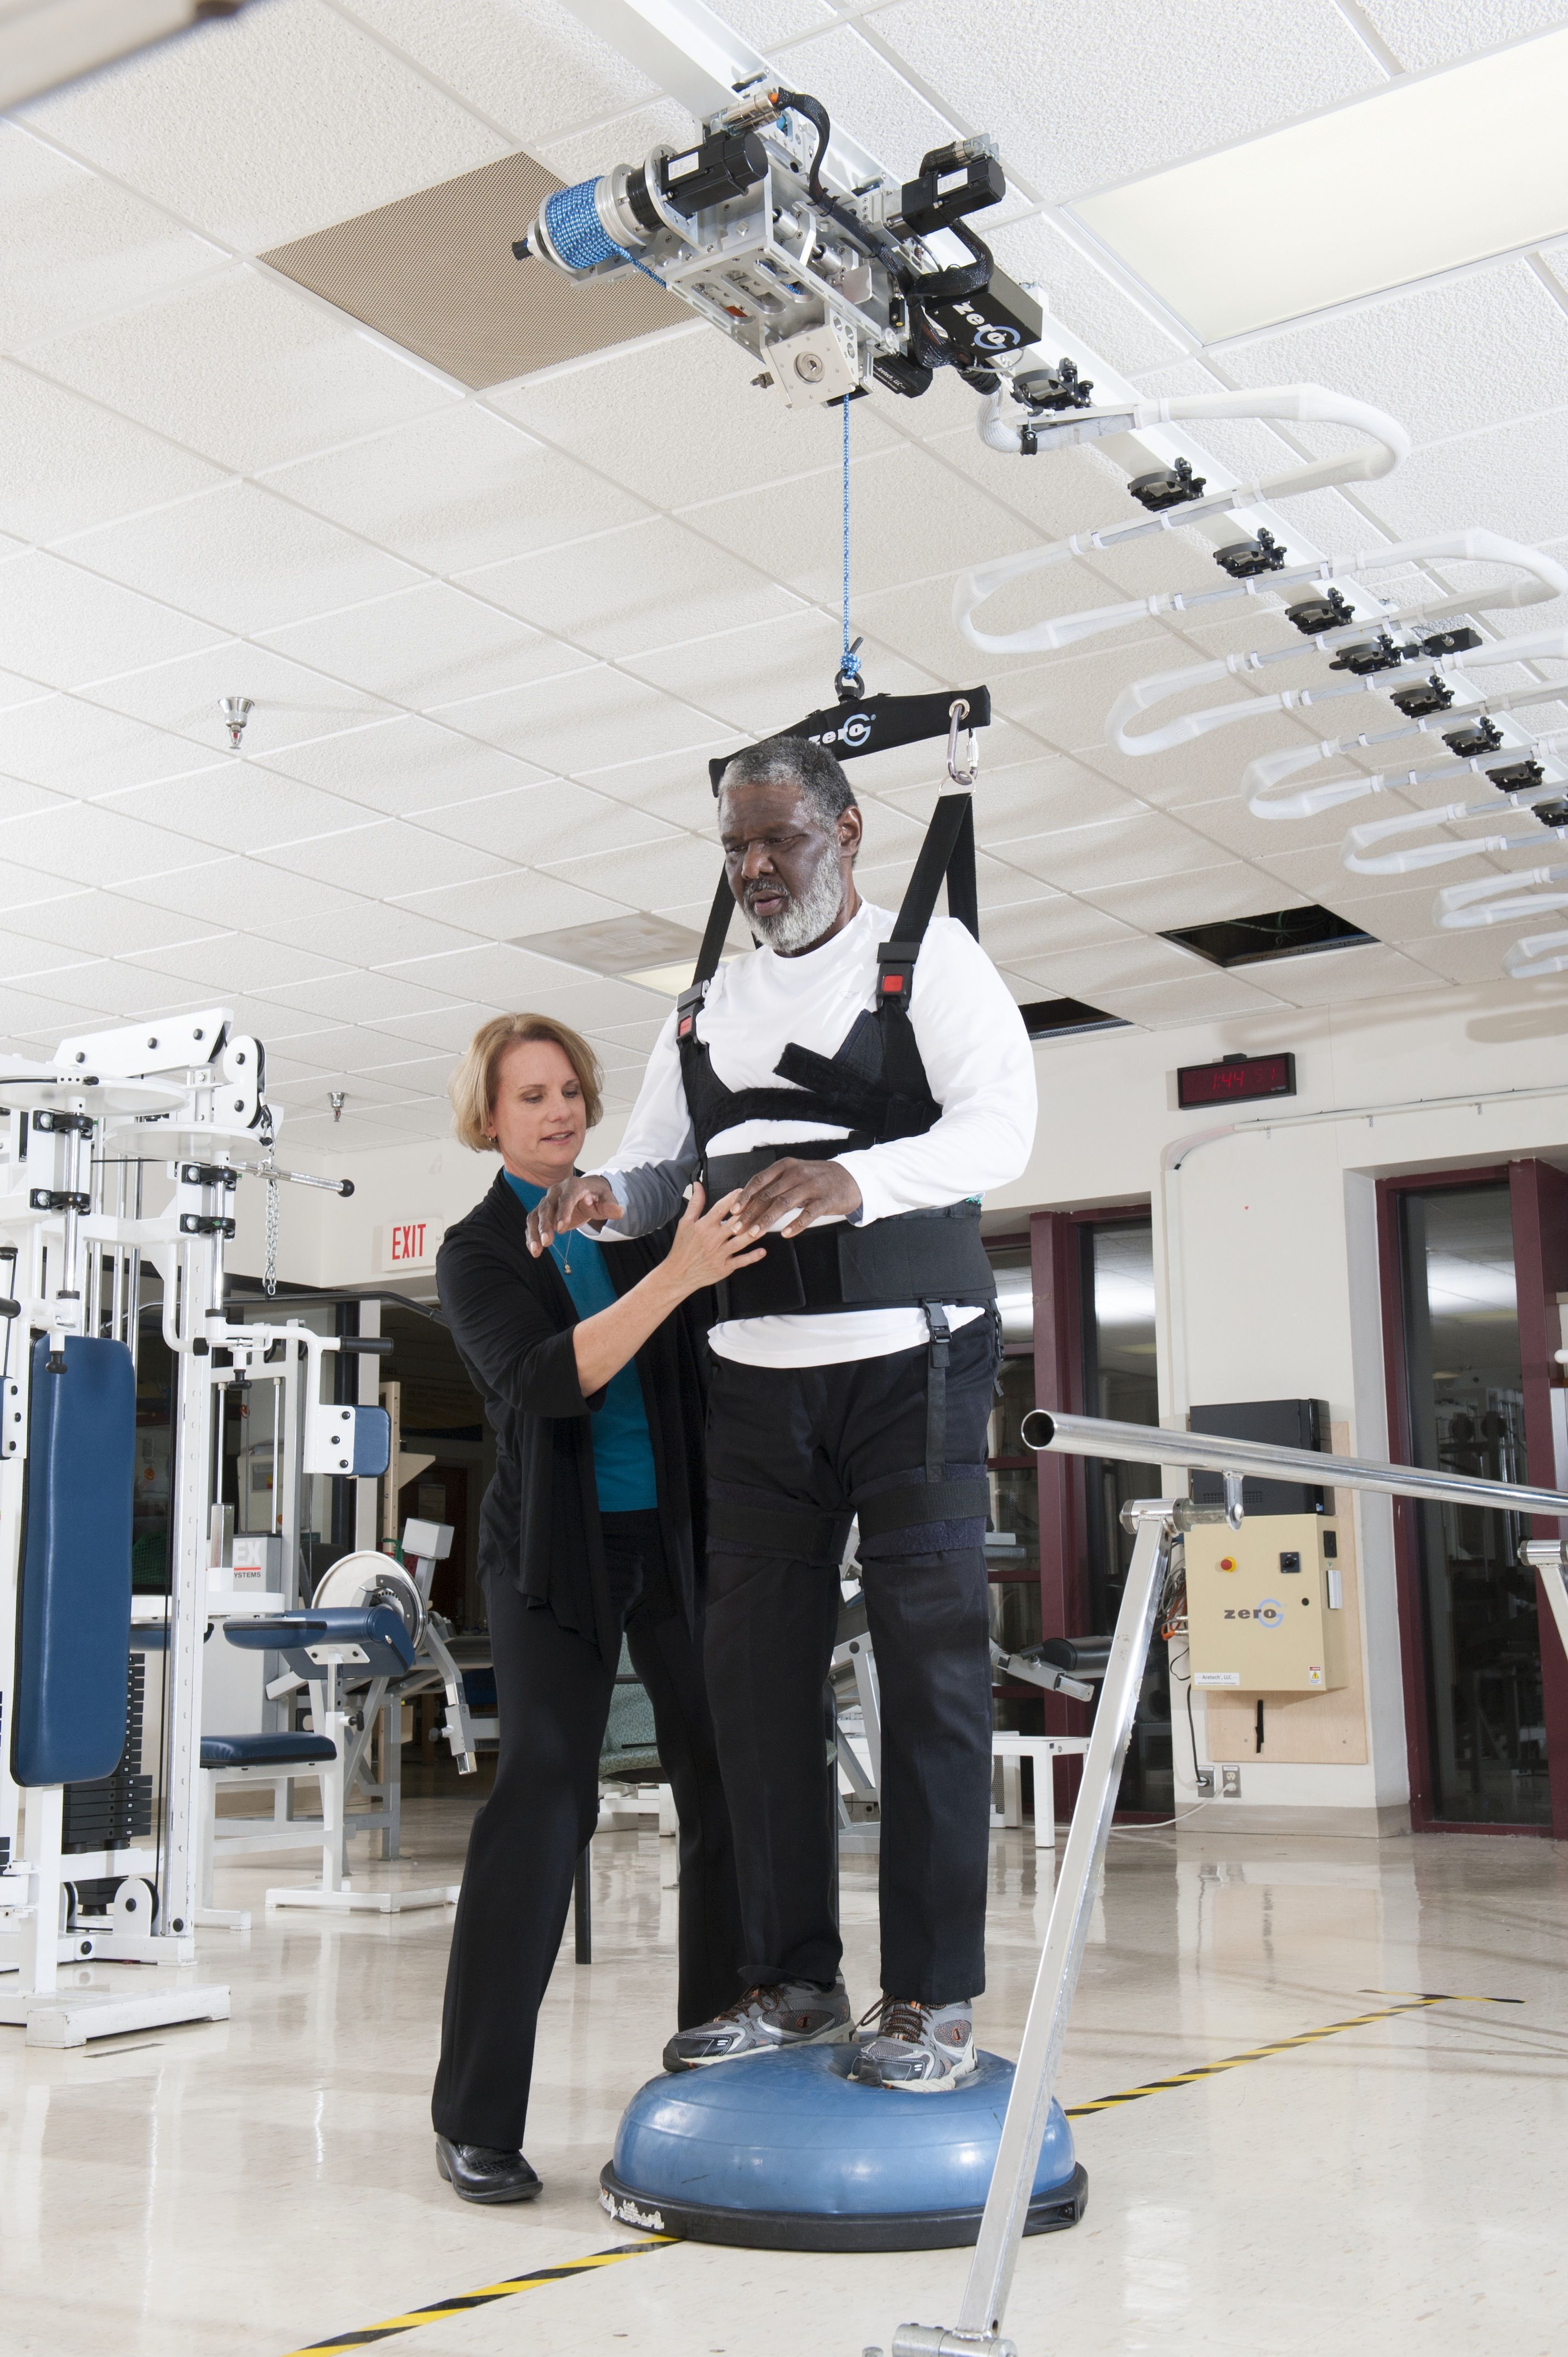 Aretech 174 Now Selling The Zerog Gait And Balance Training